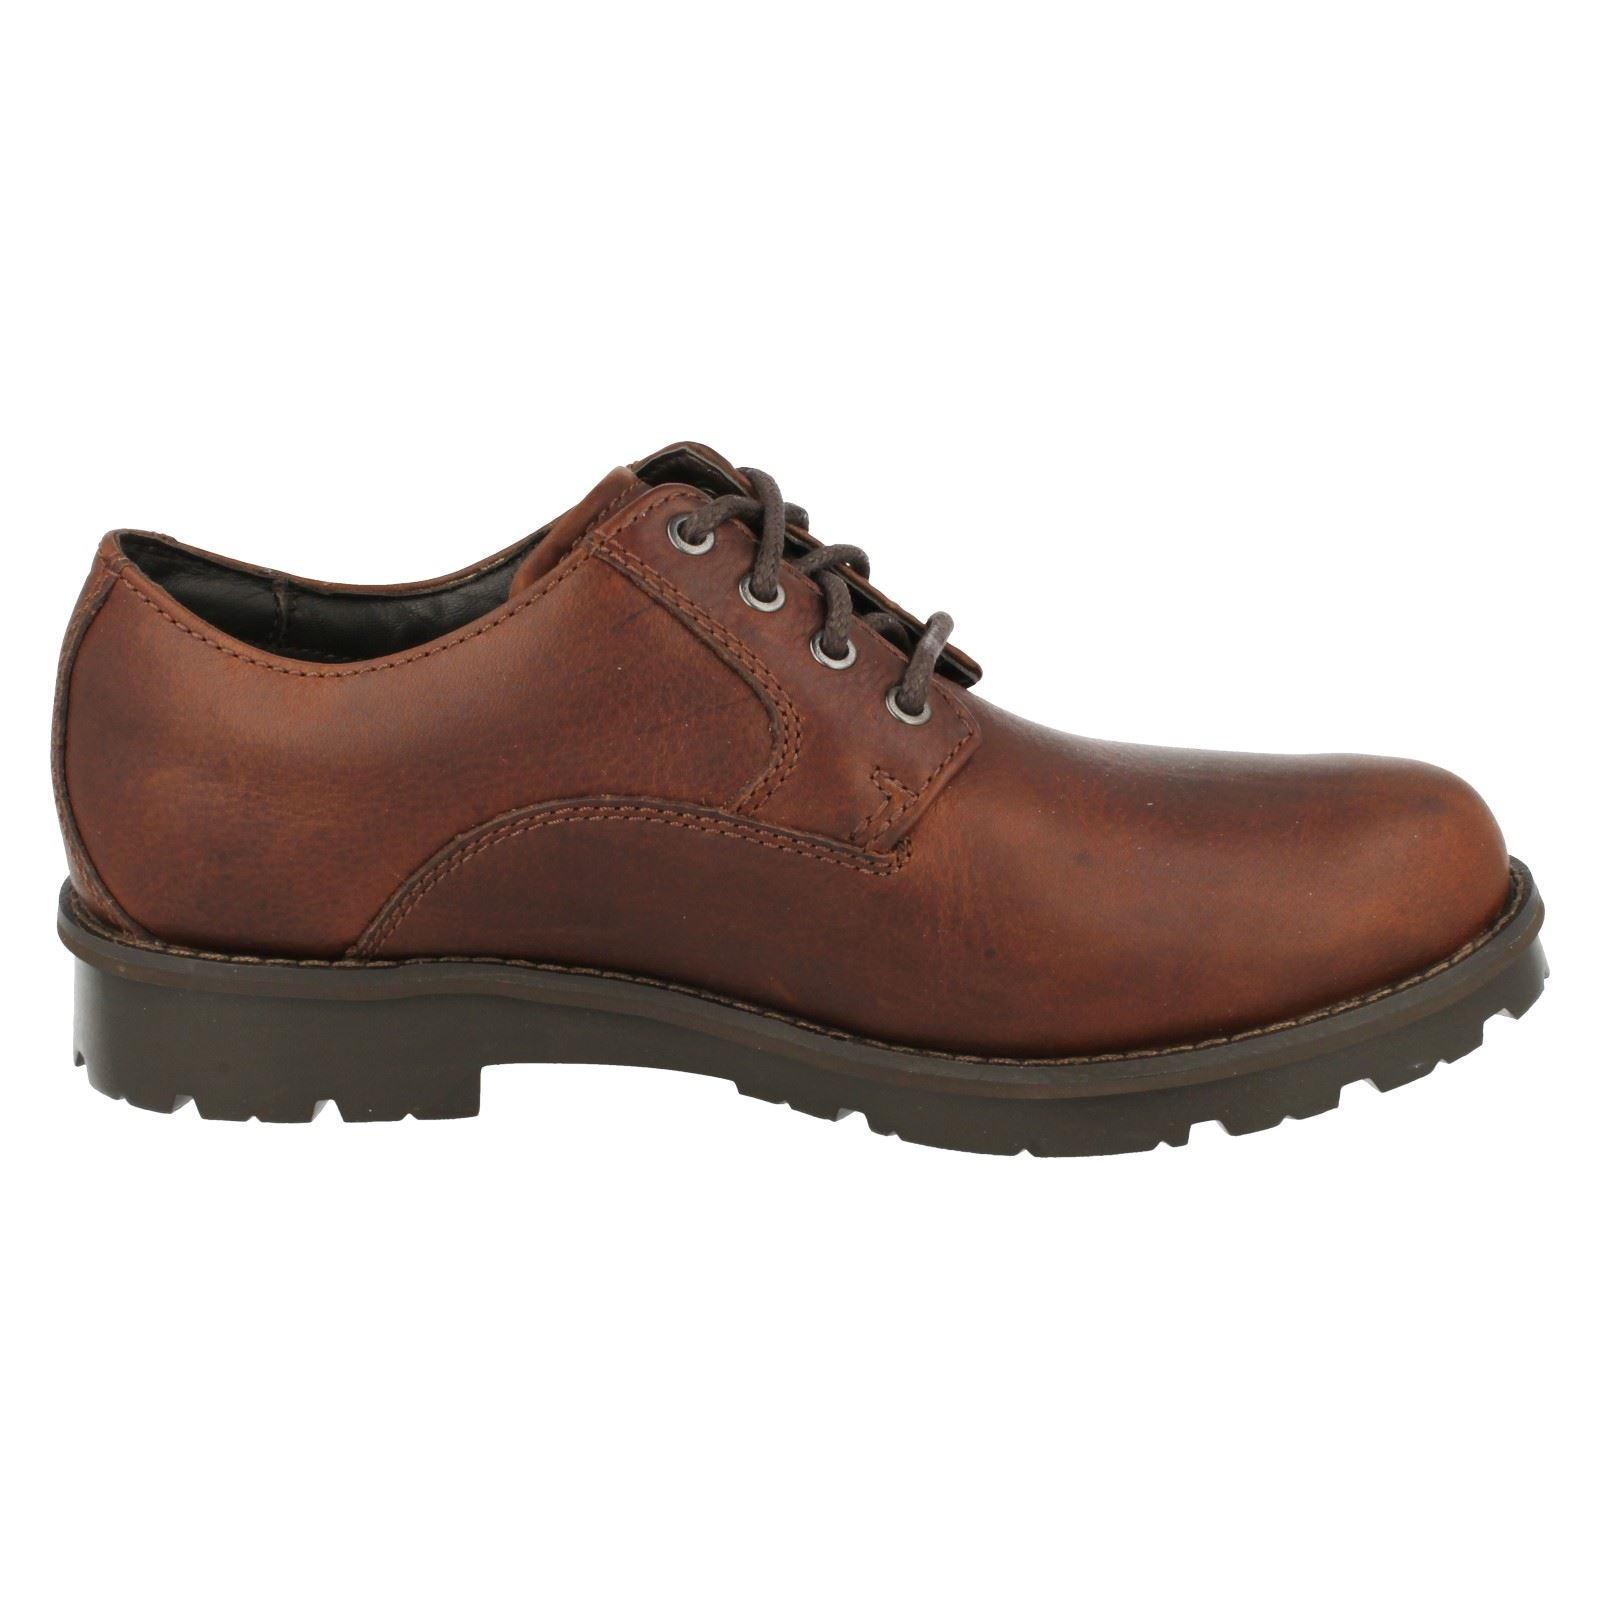 Clarks Soft Tread Mens Shoes